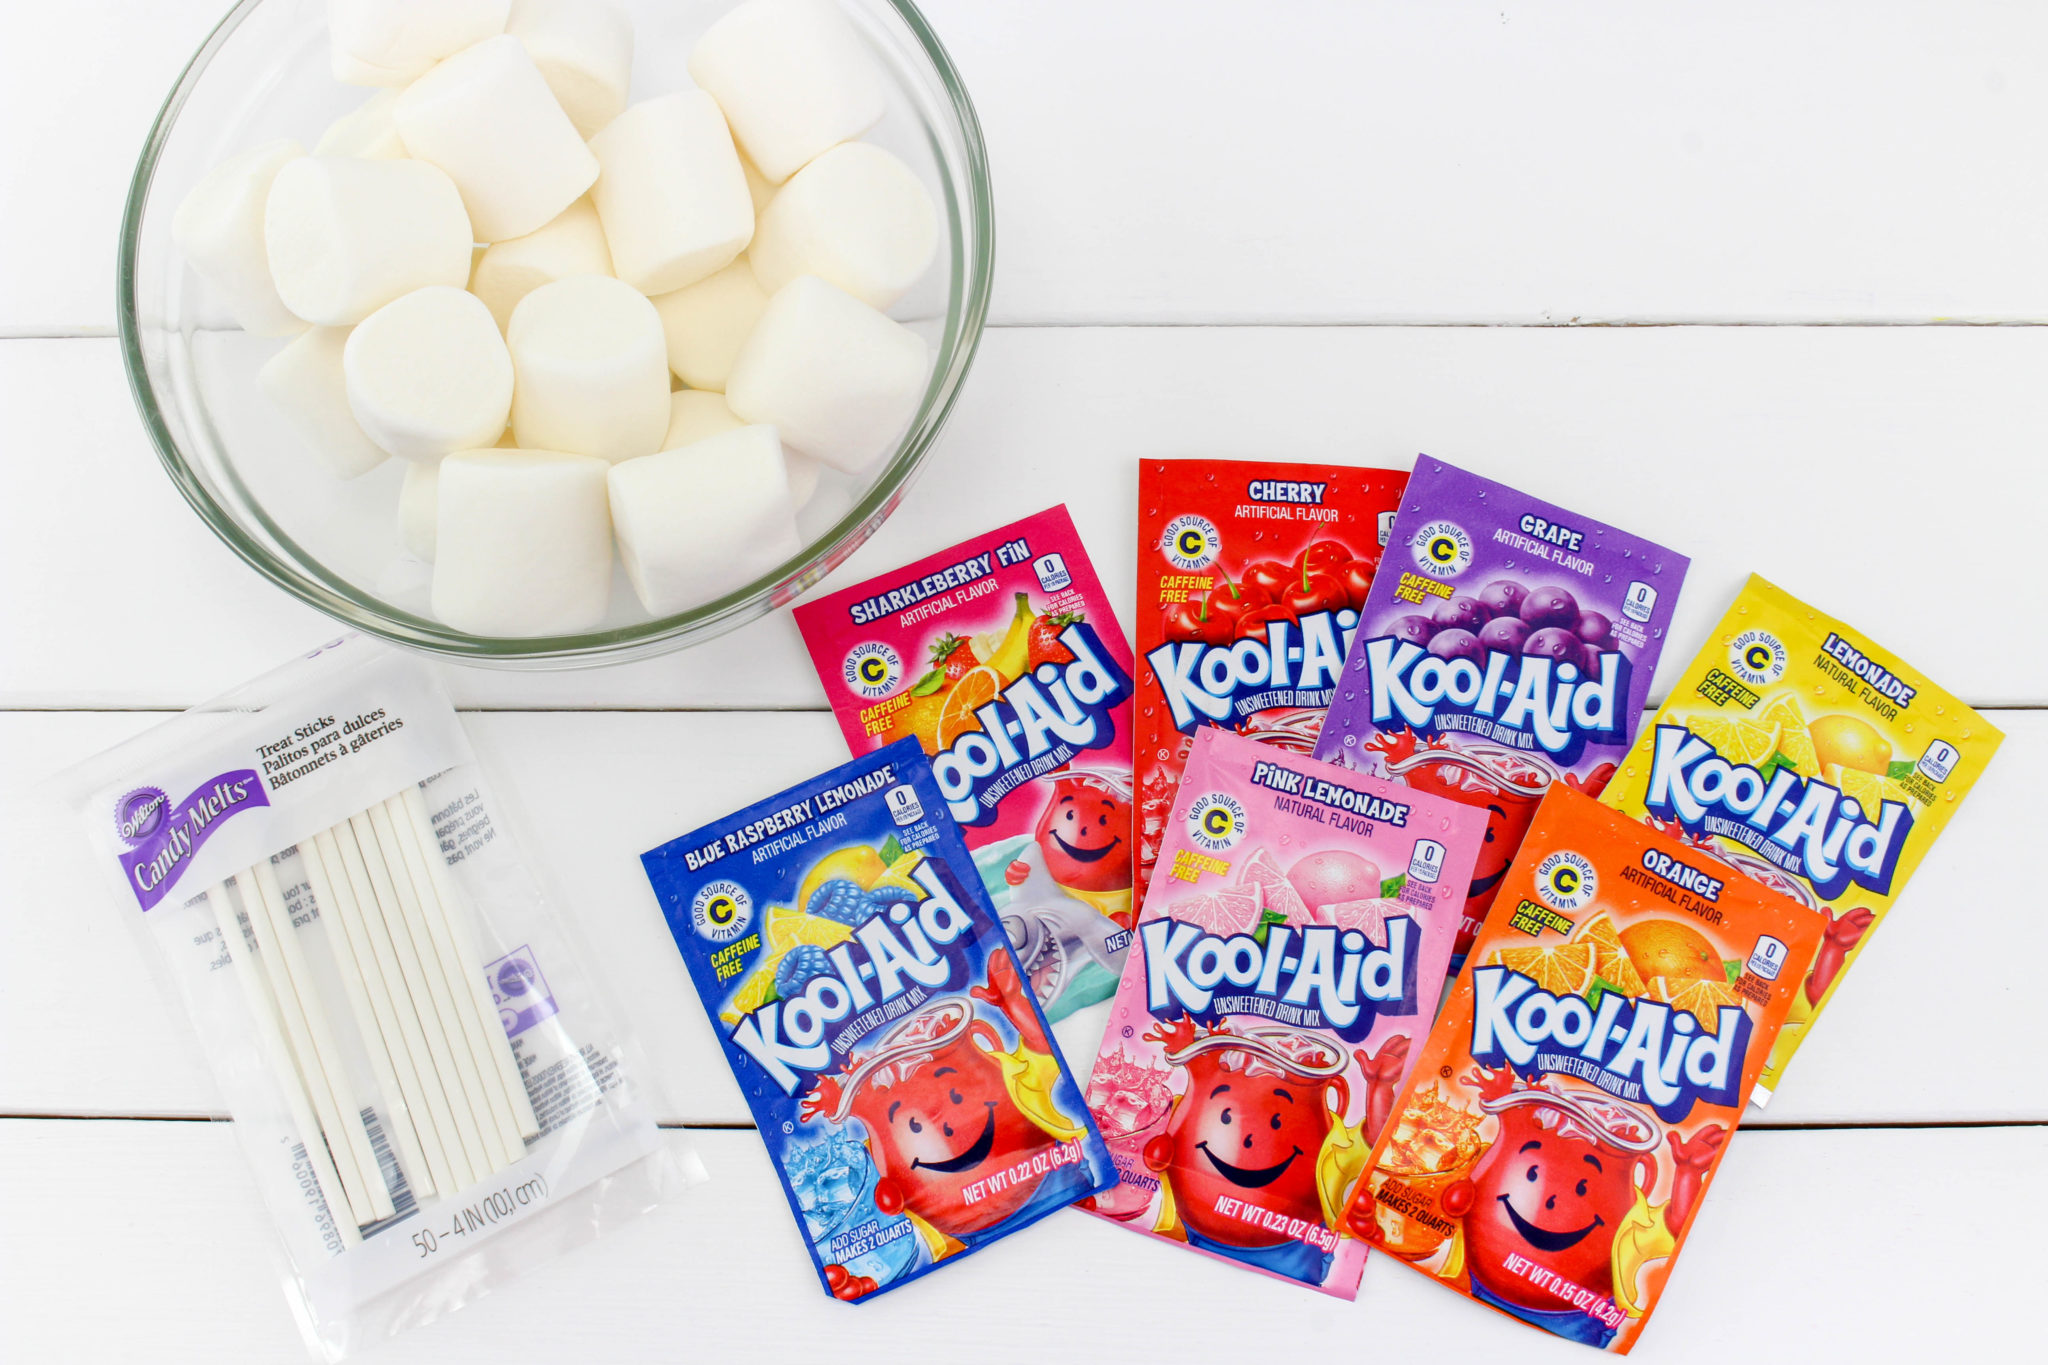 If you are looking for an easy snack idea to make for the kids this summer, try these Kool-Aid Marshmallow Pops. I promise they will be a huge hit!